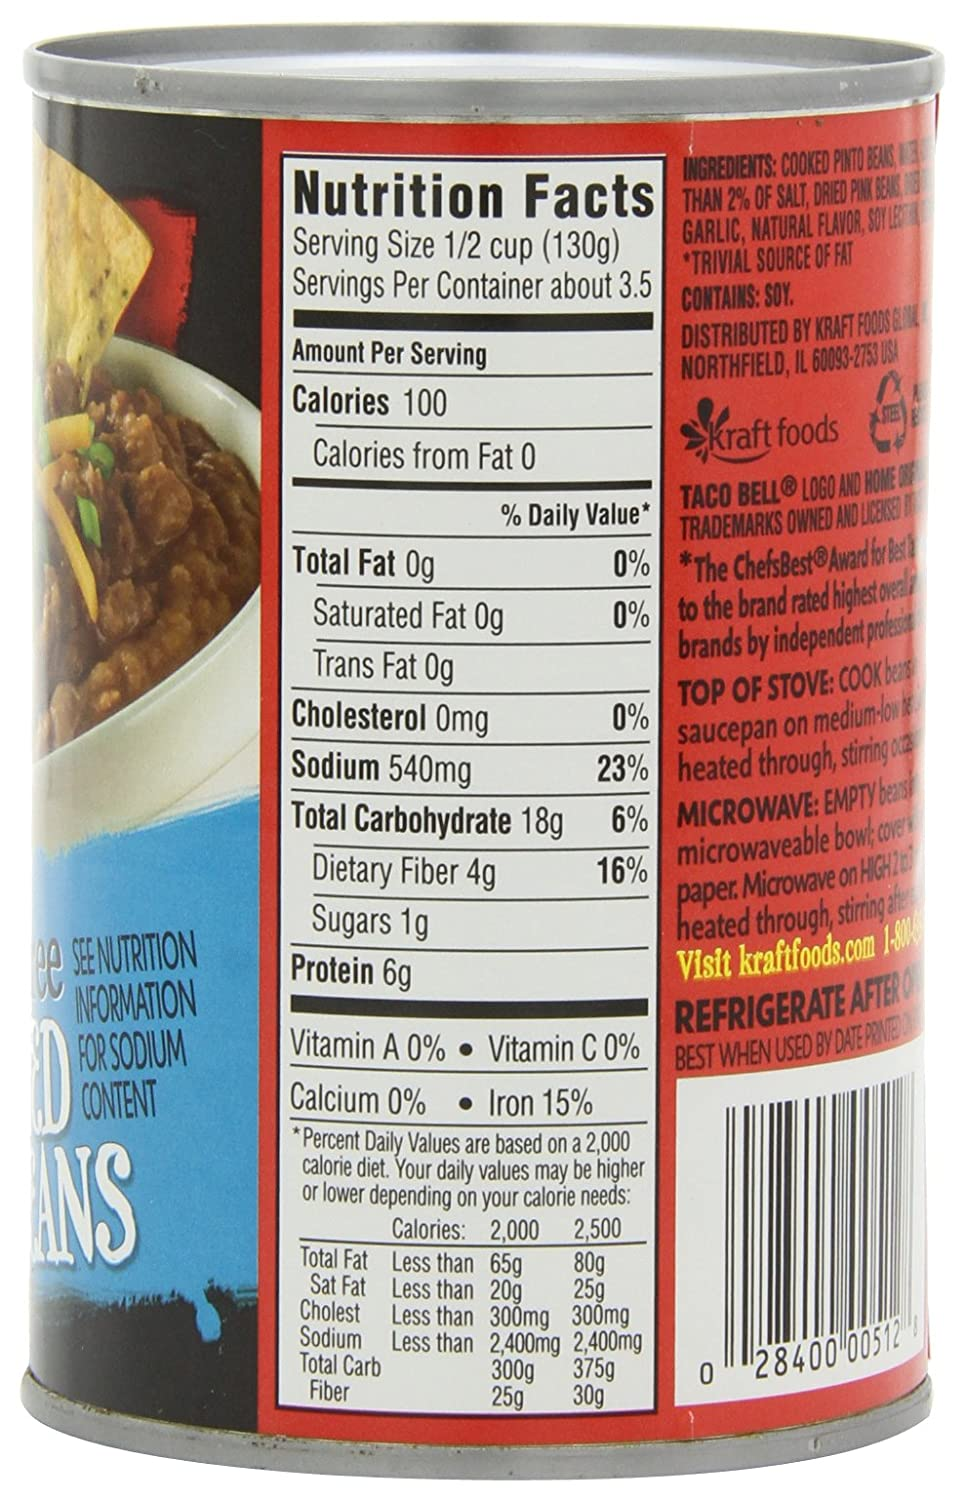 Taco Bell Fat Free Refried Beans, 16-Ounce Cans (Pack of 12)